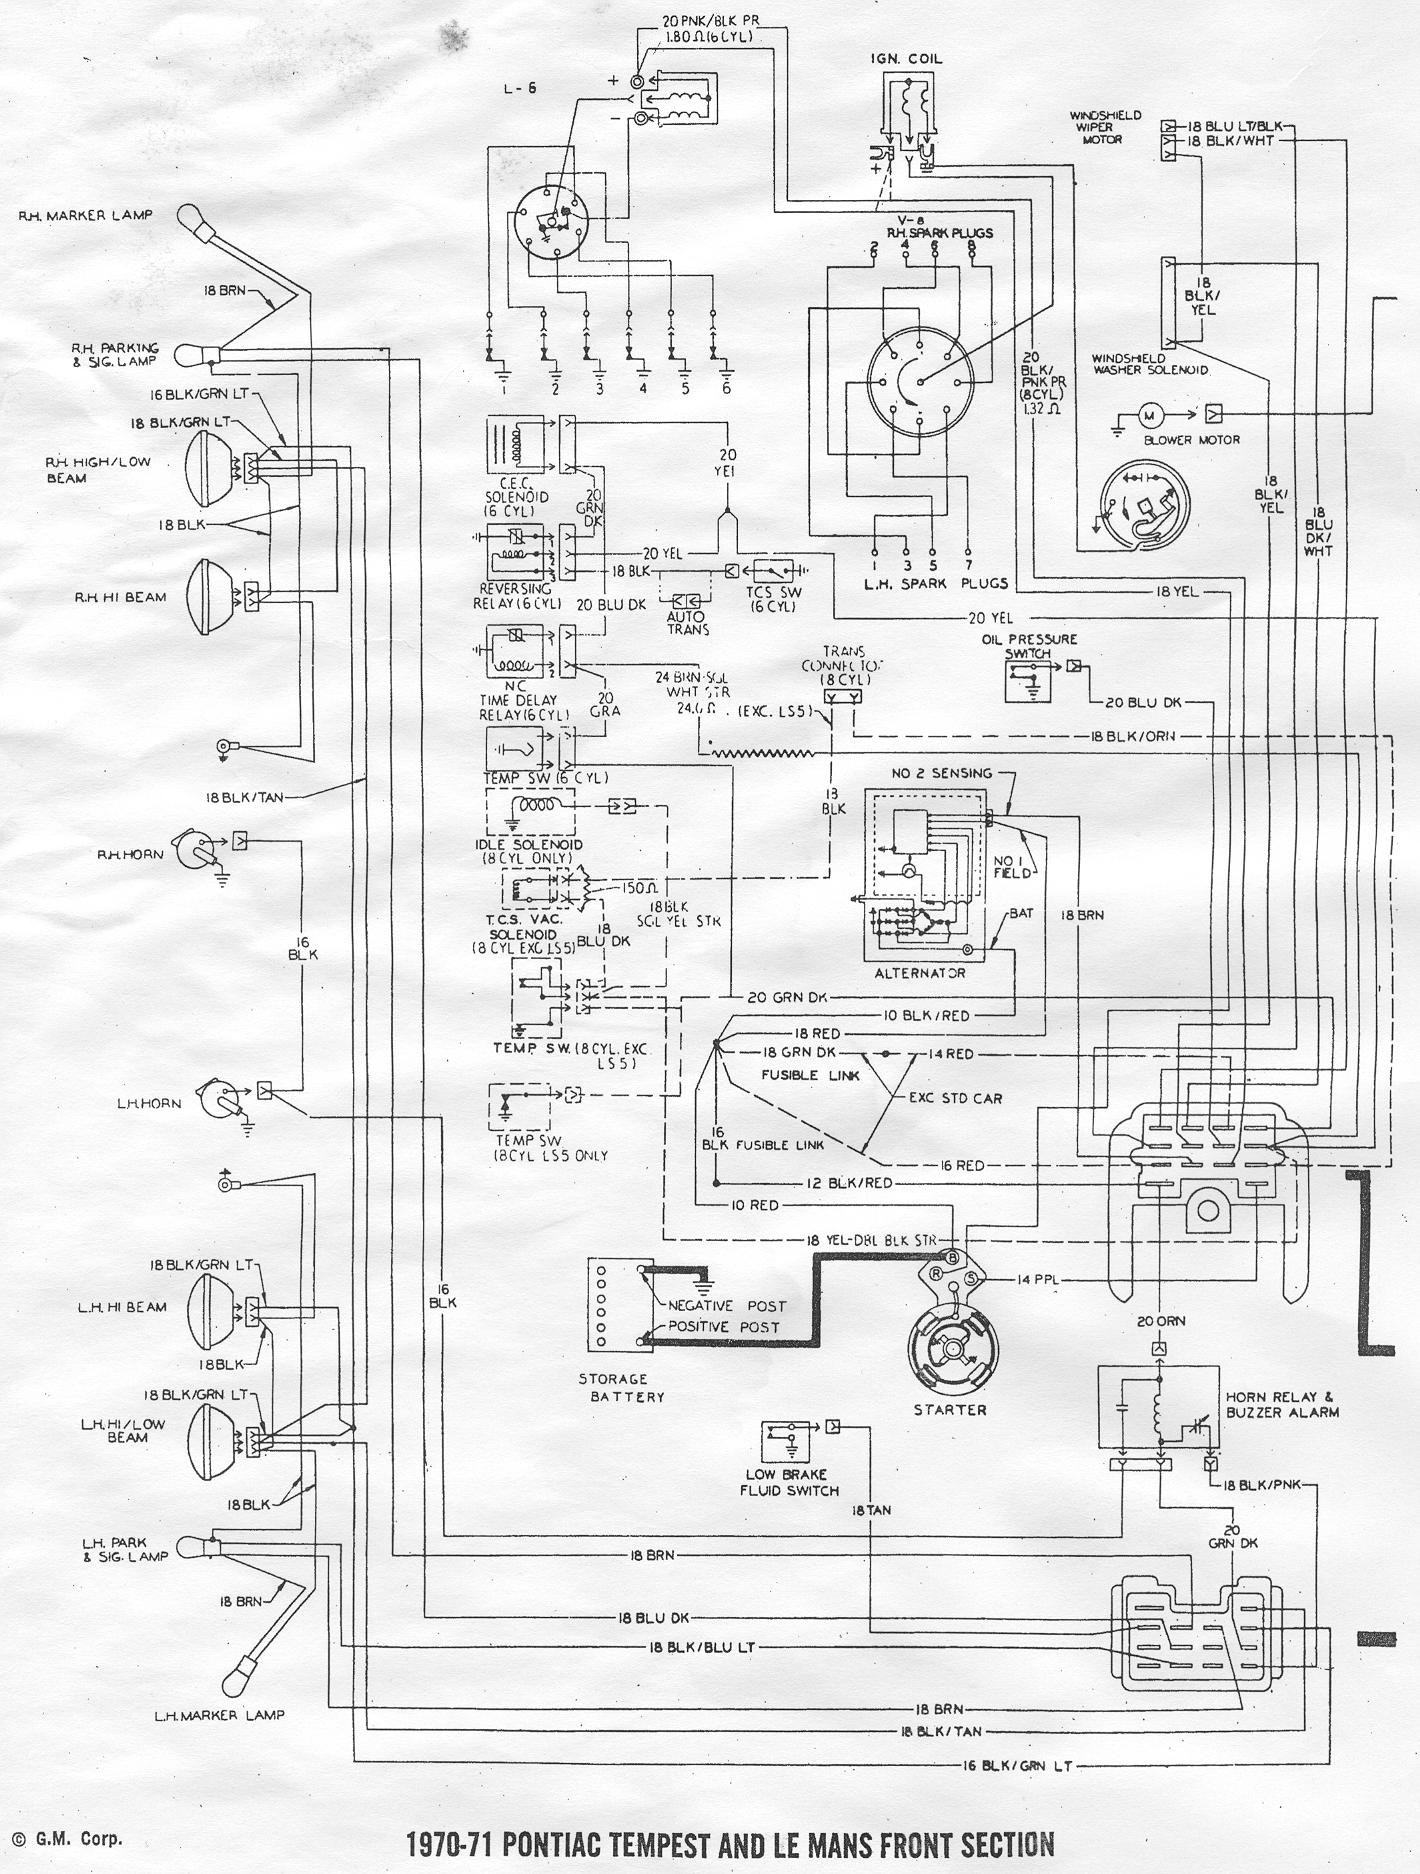 Dome Light Wiring Diagram 2006 Pontiac Gto | Wiring ... on 68 chevy chevelle ss wiring-diagram, 1970 cutlass wiring-diagram, 66 mustang lights wiring-diagram,